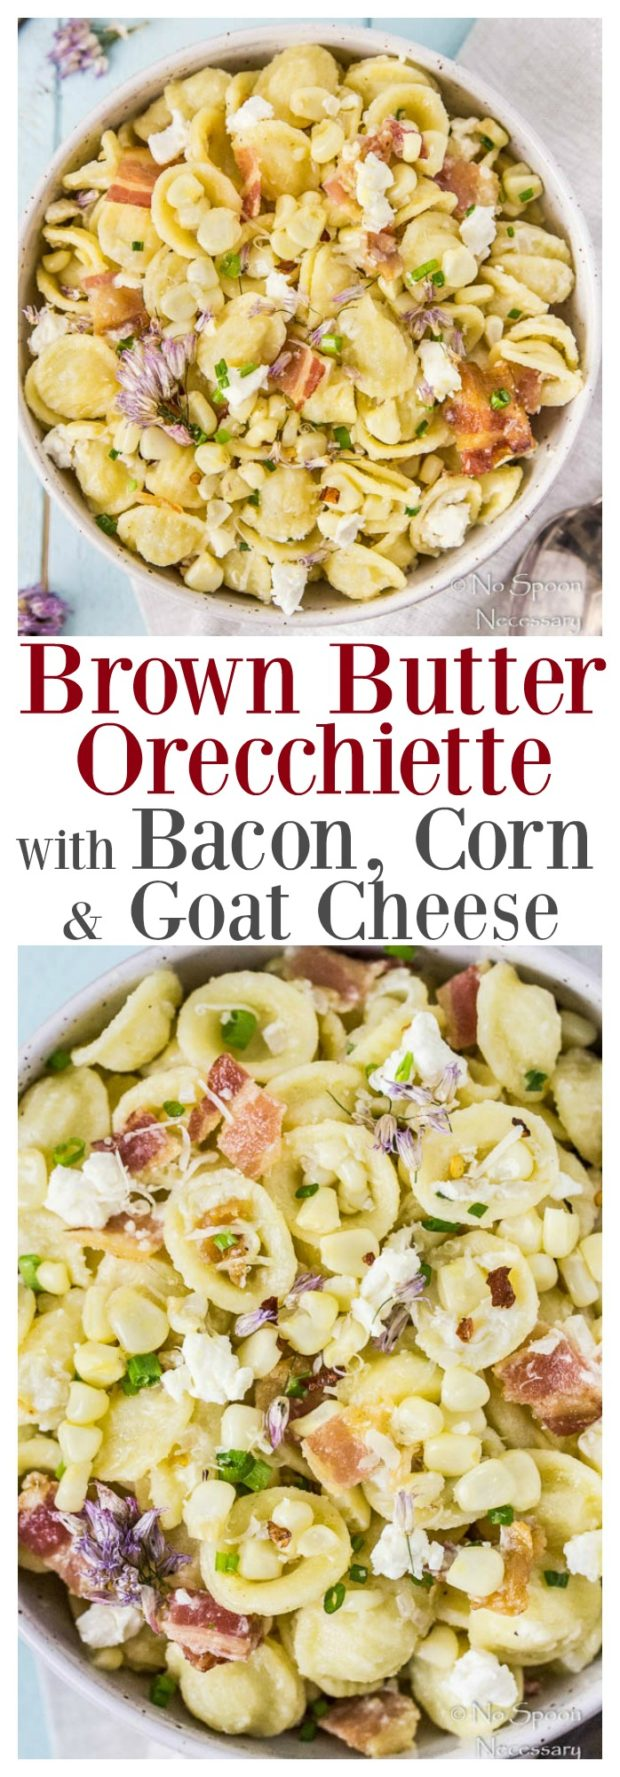 Butter Orecchiette with Bacon, Corn & Goat Cheese - No Spoon Necessary ...